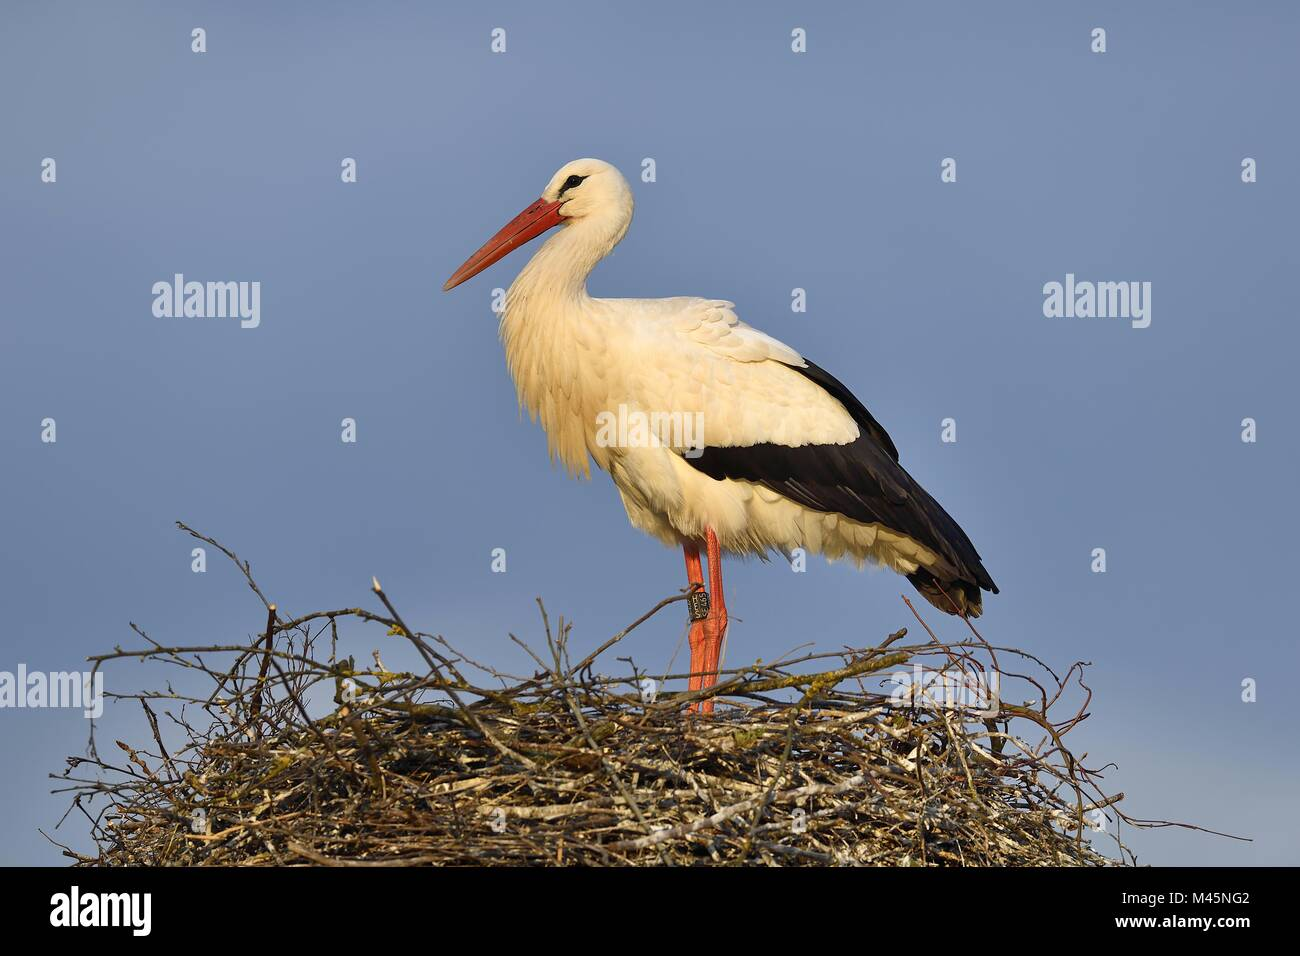 White stork (Ciconia ciconia),standing on eyrie,Canton of Aargau,Switzerland - Stock Image